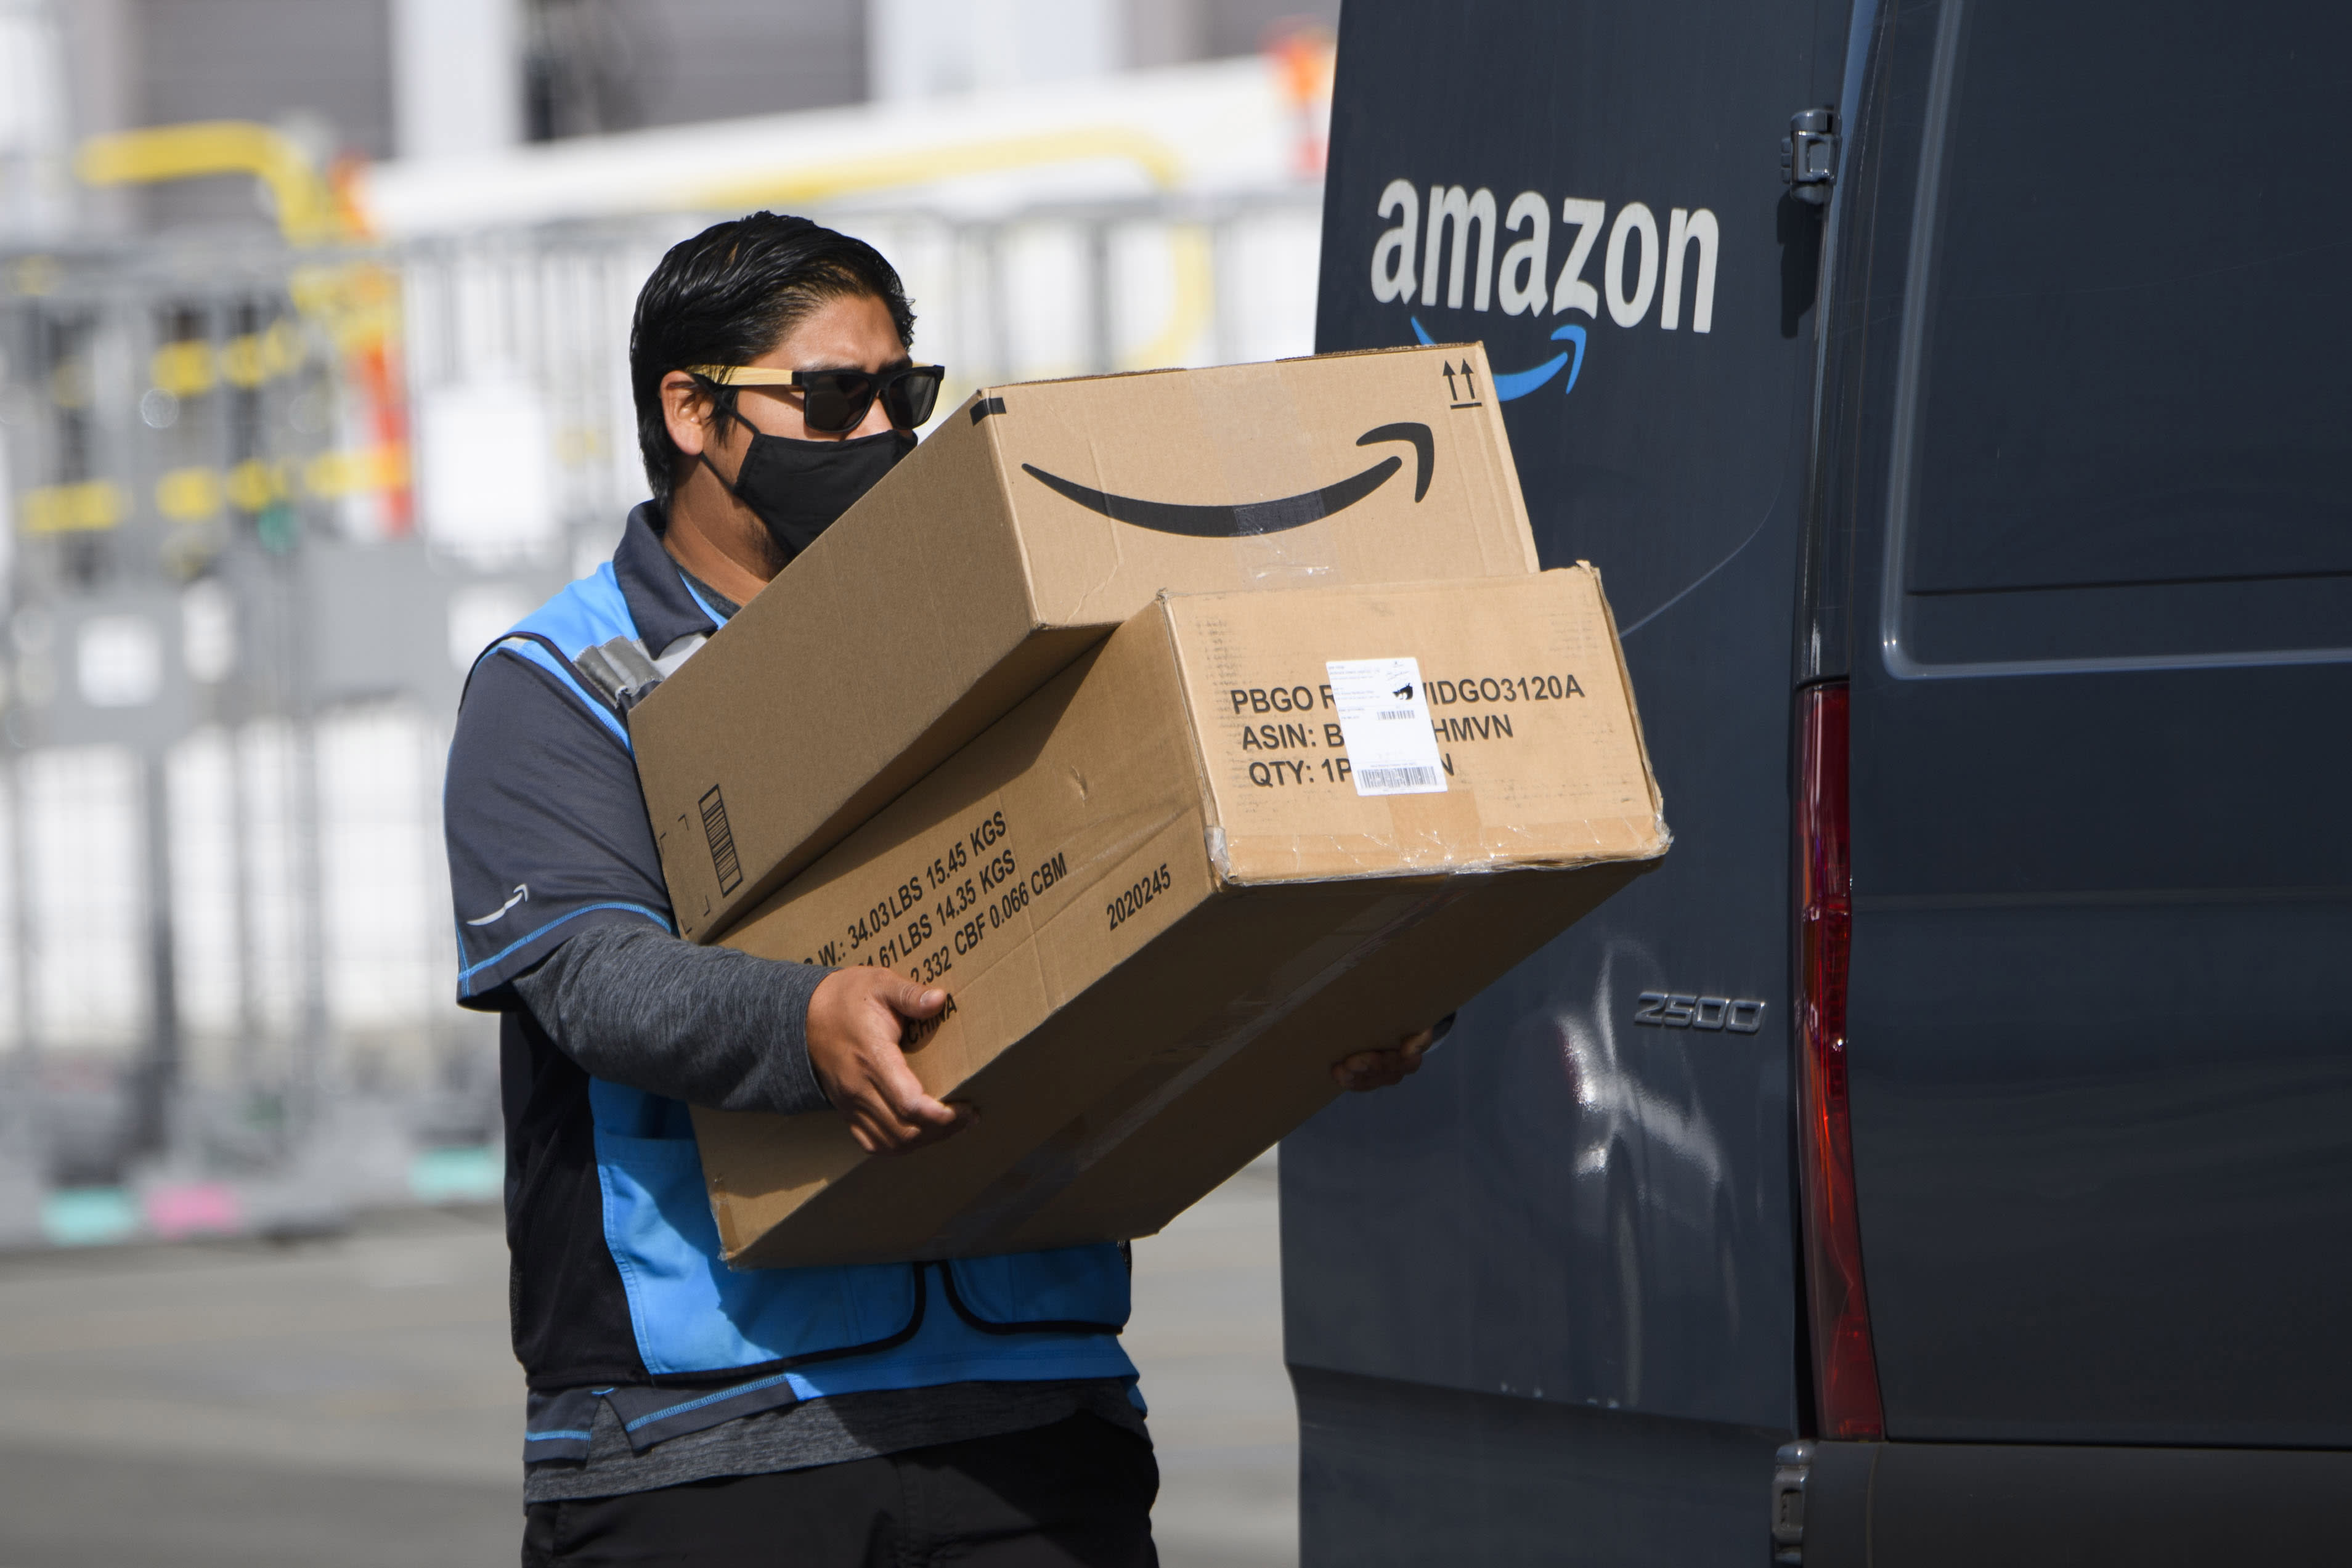 Amazon is raising eyebrows in Ireland with reports of a new e-commerce hub